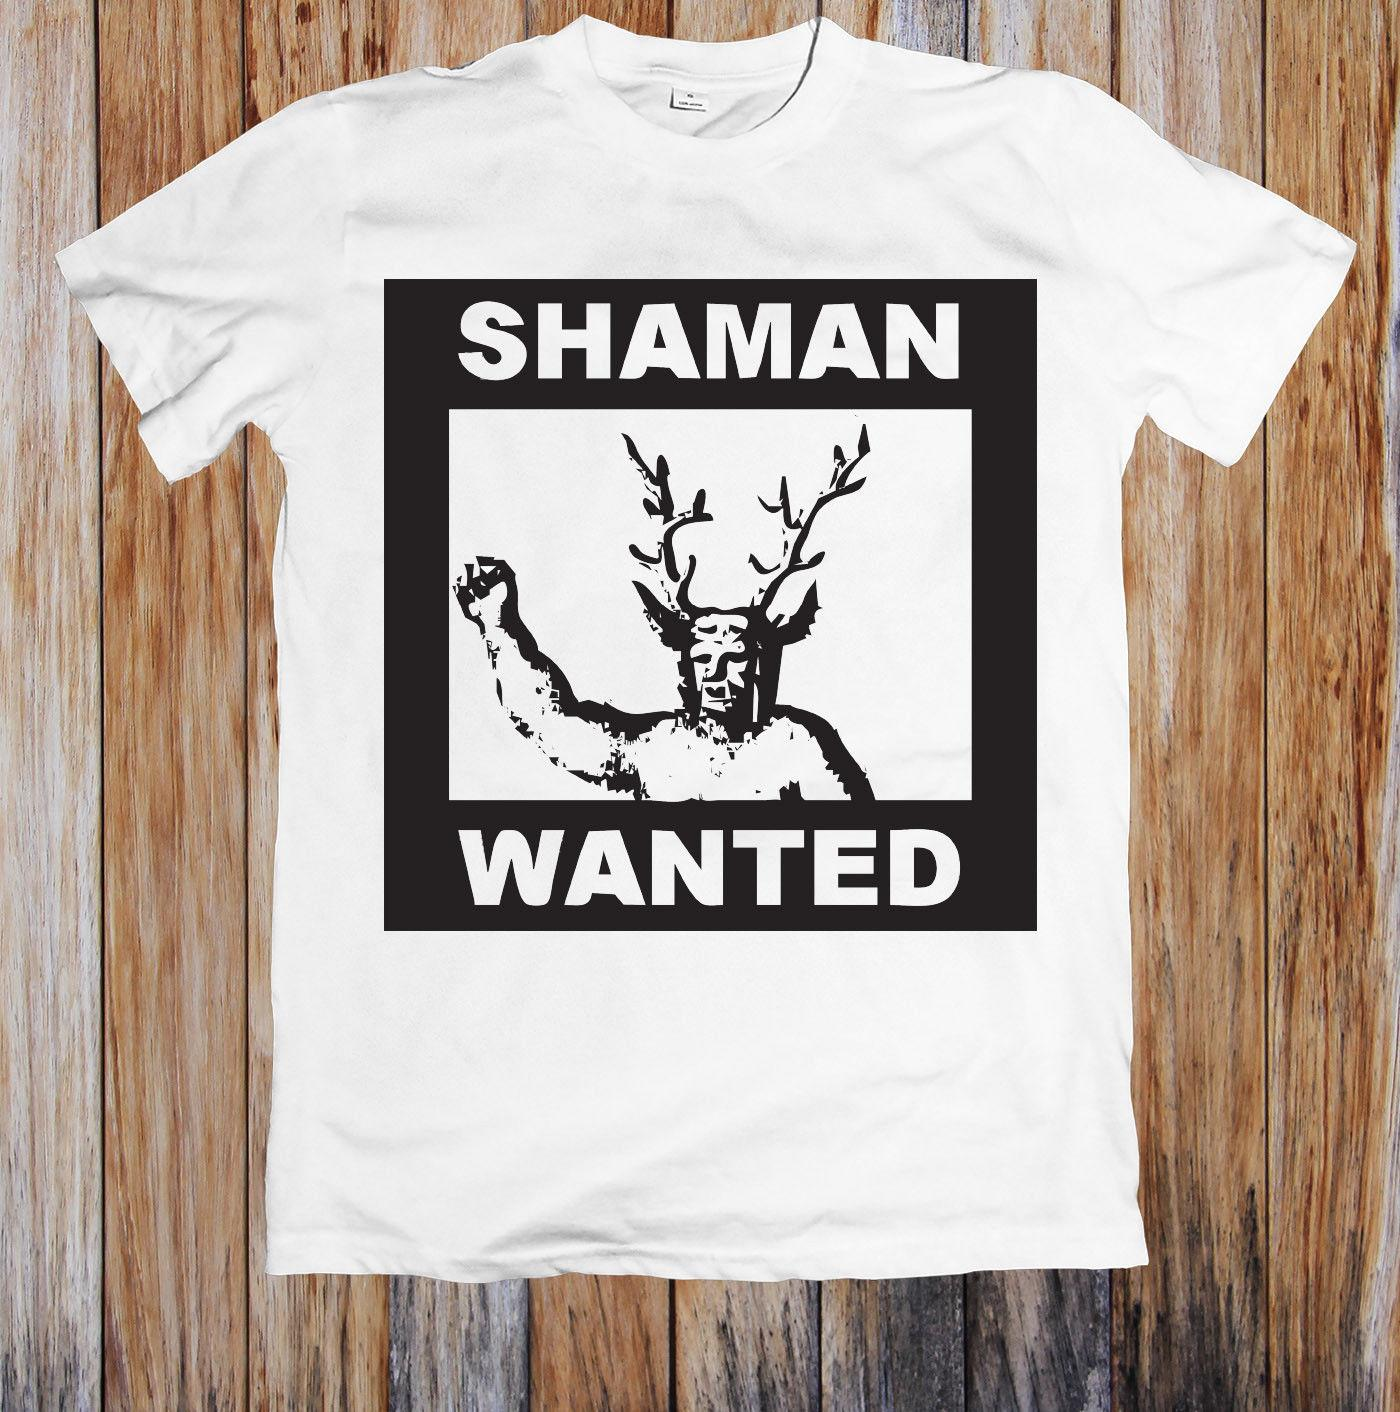 6ea518a52 SHAMAN WANTED UNISEX T SHIRT Buy Shirt Designs Funny Clever T Shirts From  Bincheng2, $11.56| DHgate.Com